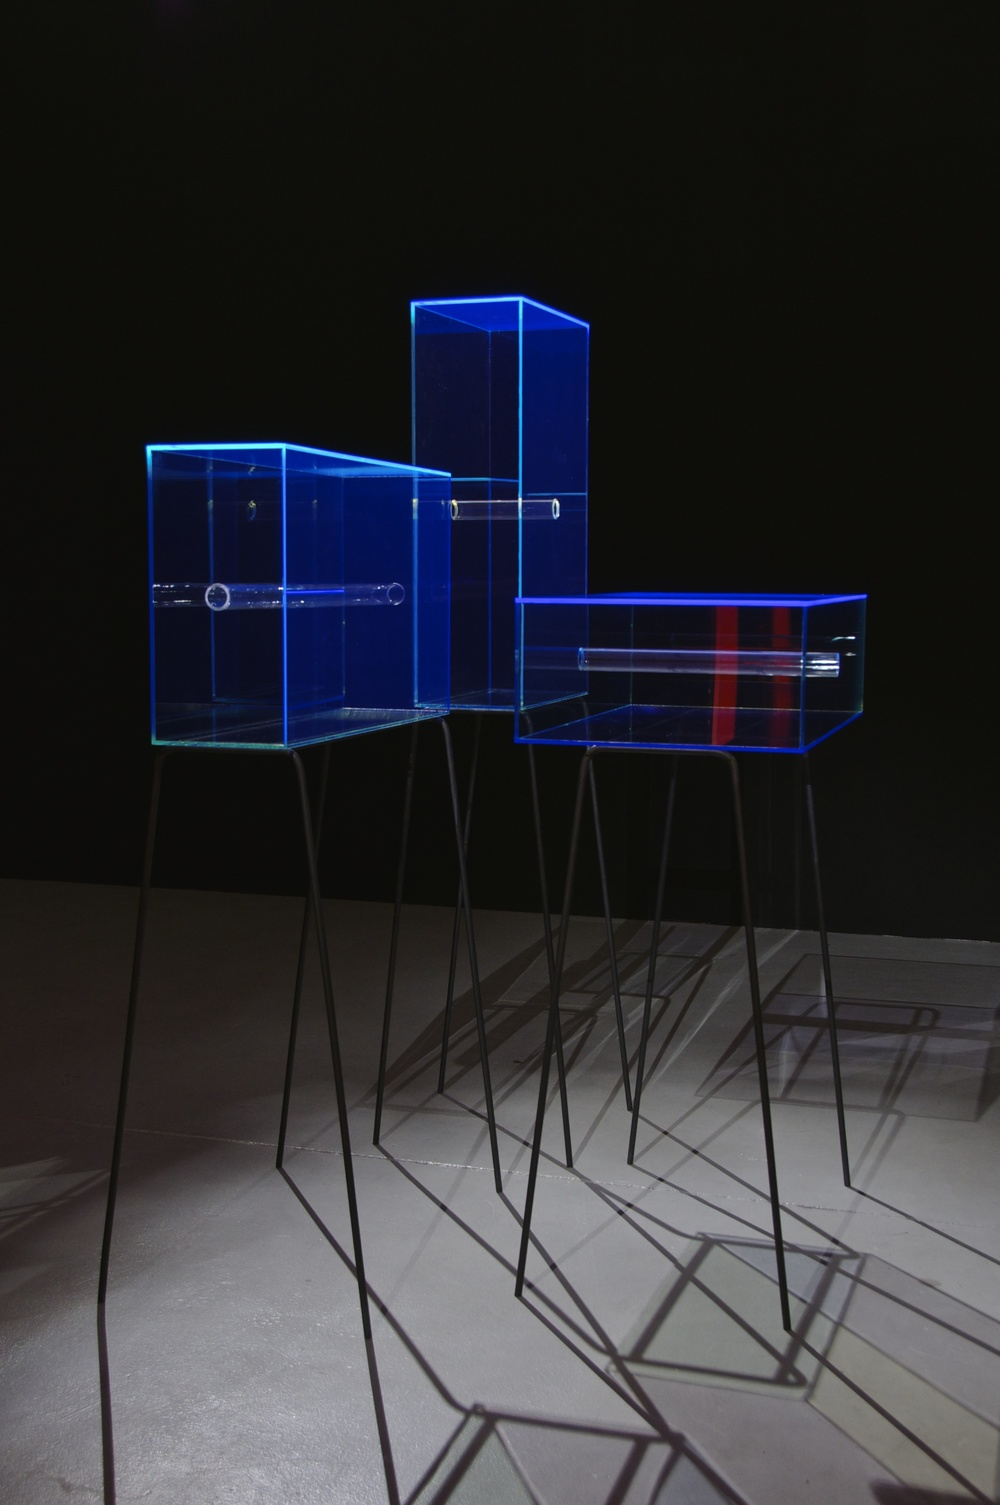 Matt Huppatz,  Glory Boxes 1-3 , 2015. Perspex, mild steel. Photo by Alex Lofting. Courtesy of the artist.